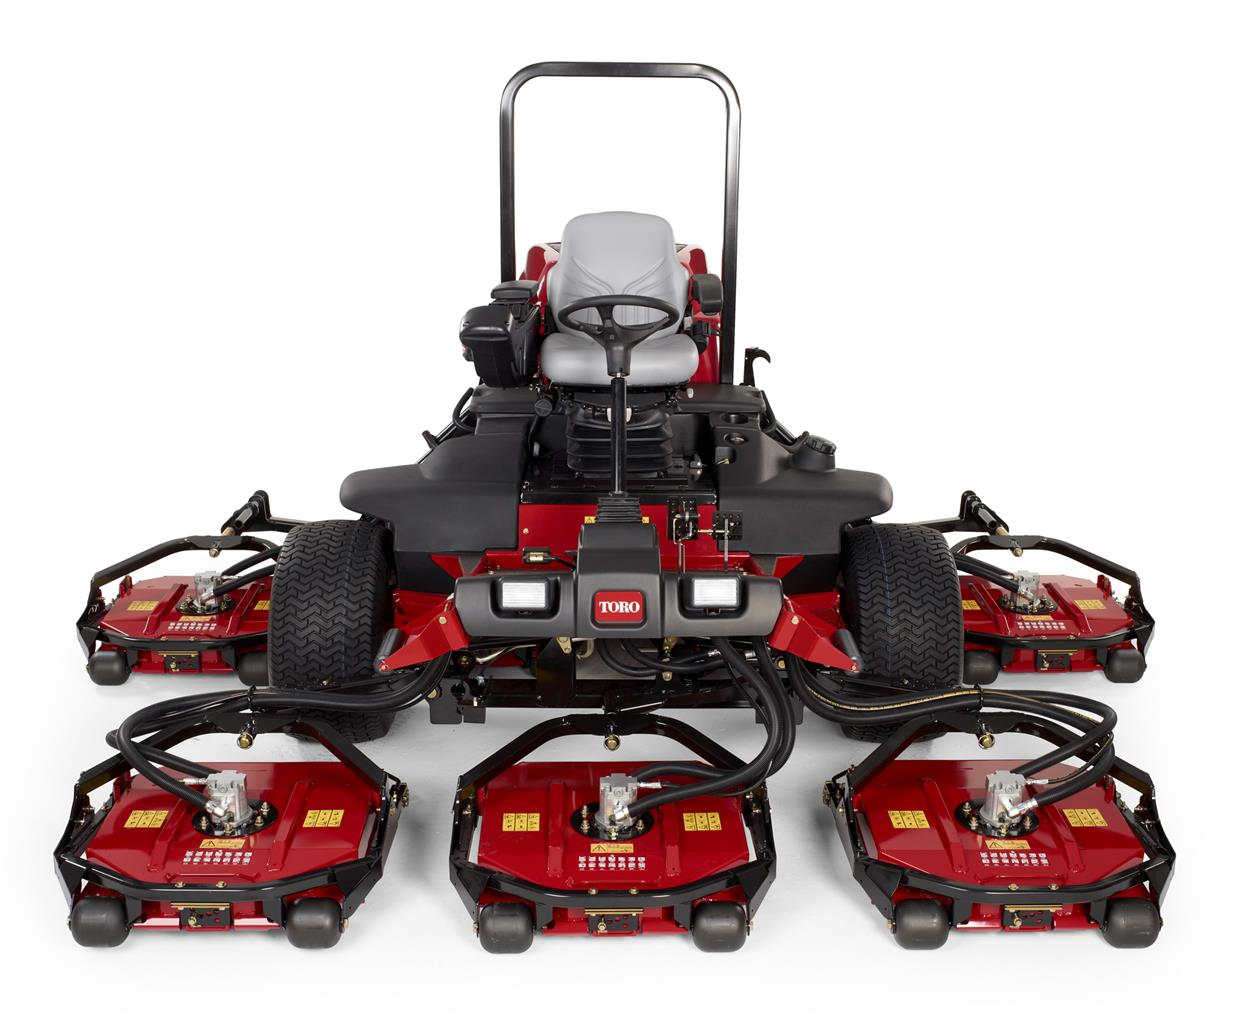 groundsmaster 4700 front.ashx?mw=700&mh=599&hash=F13194F91BF7A0A6052C9665A5C8AFE094A8D088 toro groundsmaster� 4700 d (30882) Toro Groundsmaster 117 Parting Out at fashall.co